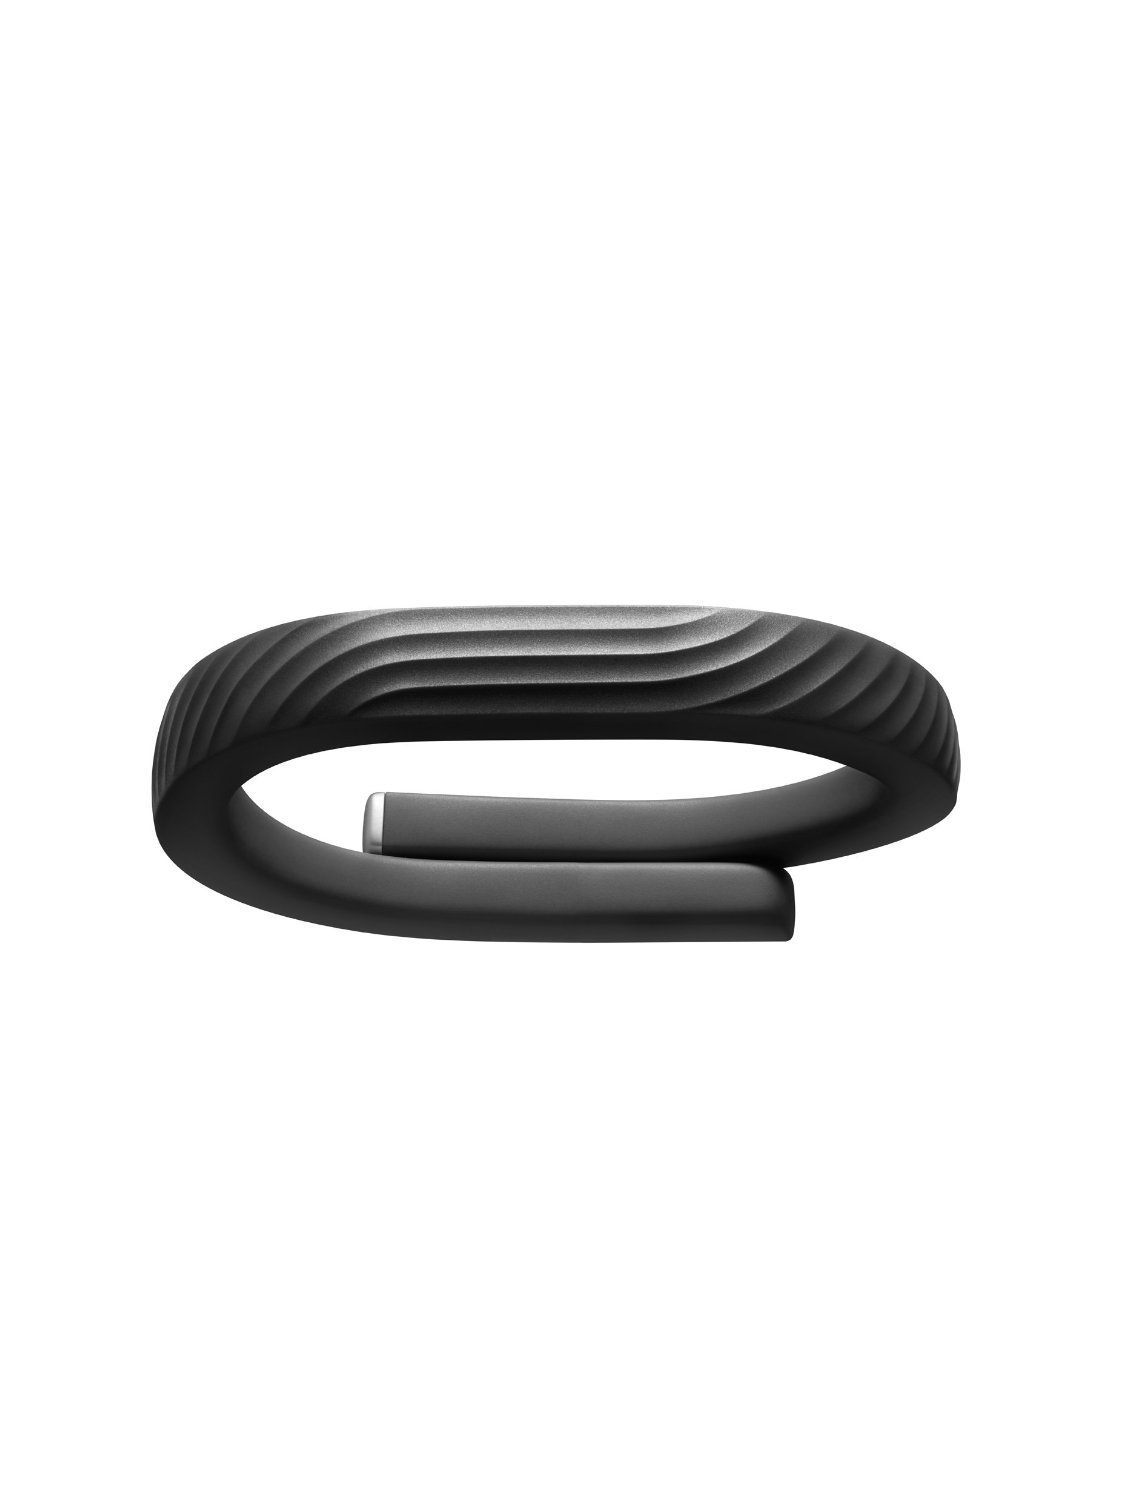 JAWBONEUP All Day Life Wristband Large Image 1